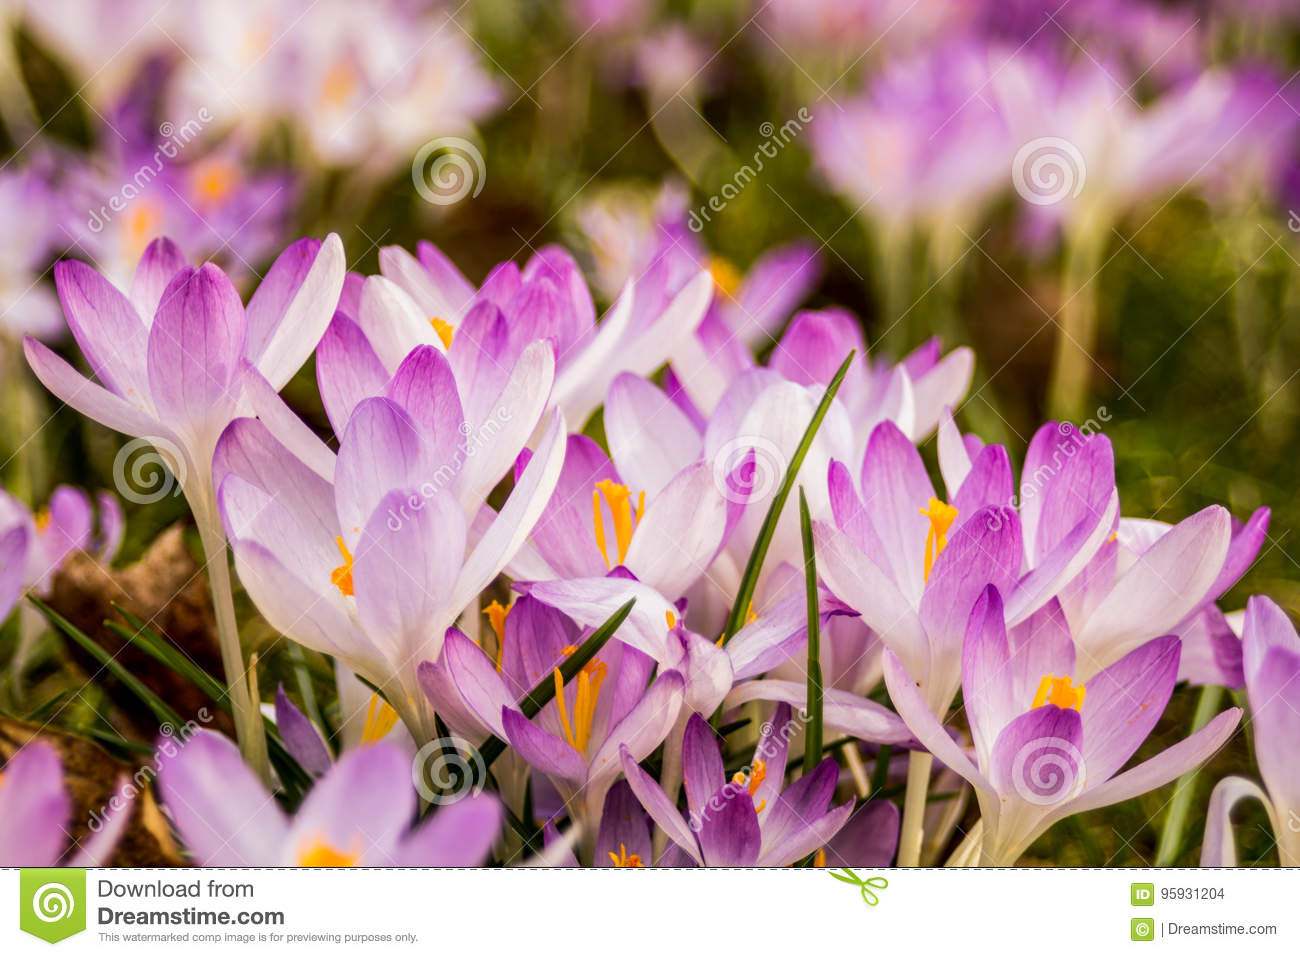 Crocus Plural Crocuses Or Croci Stock Photo Image Of Crocuses